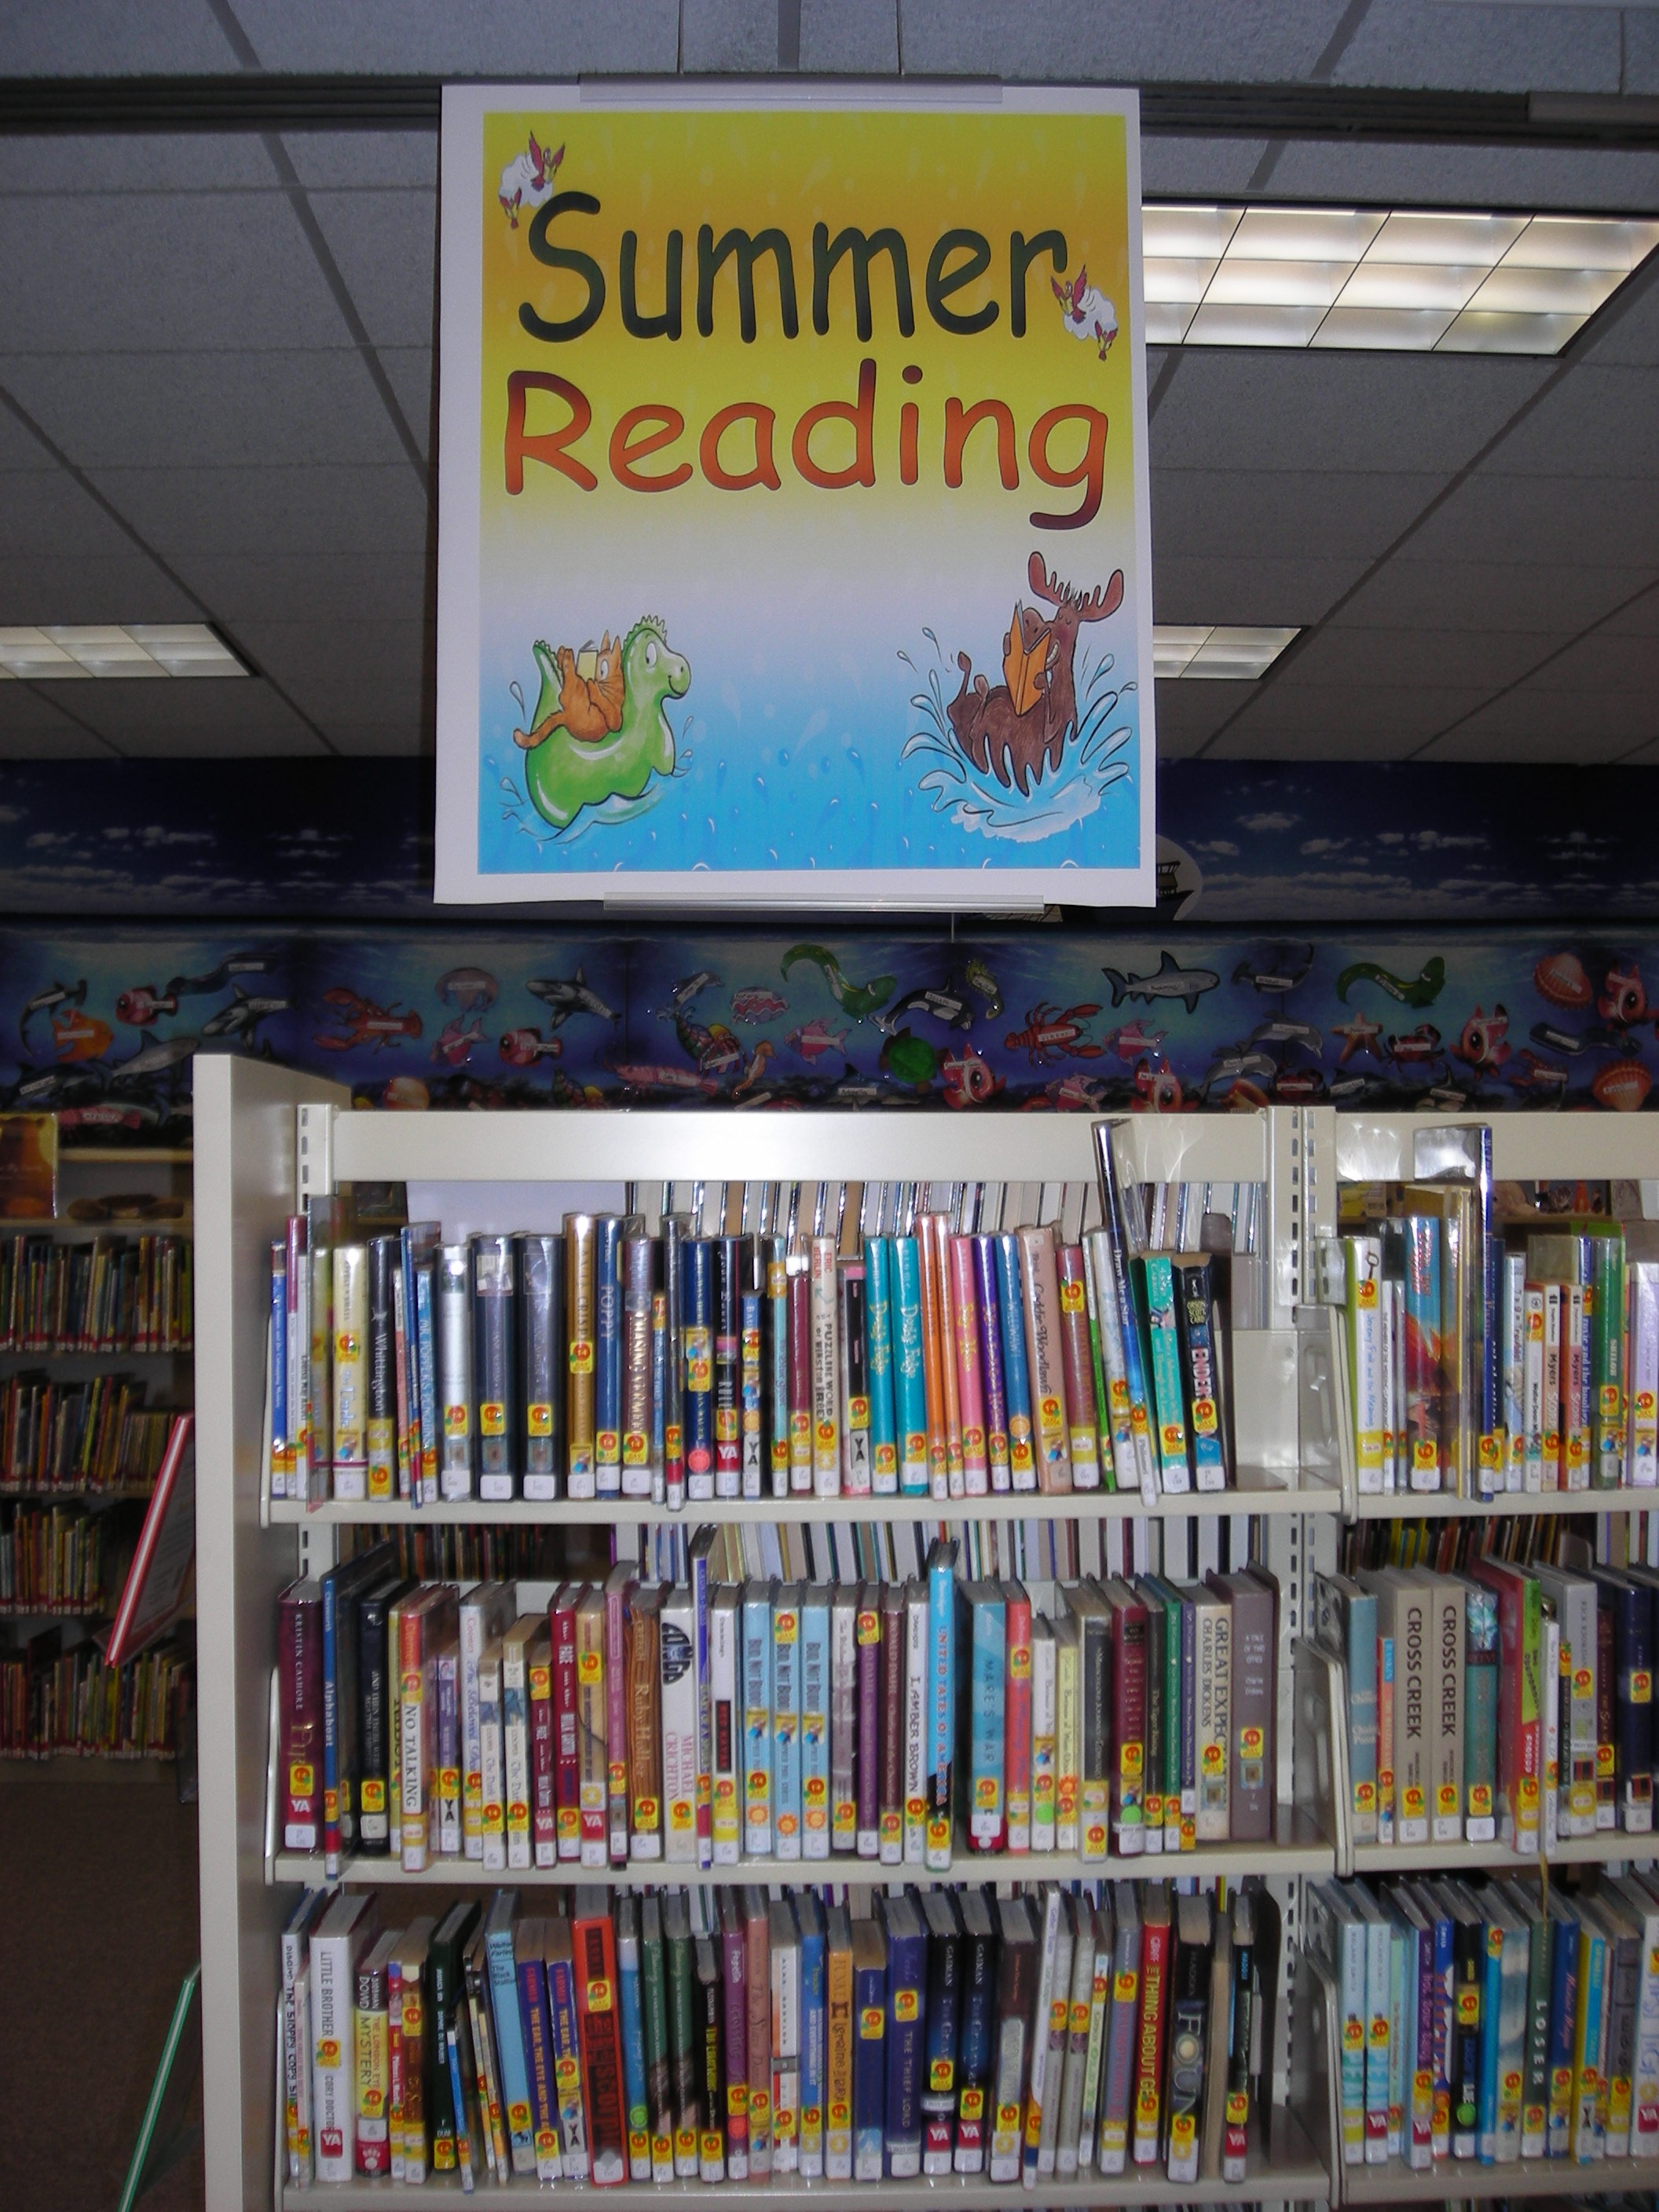 The Summer Reading section